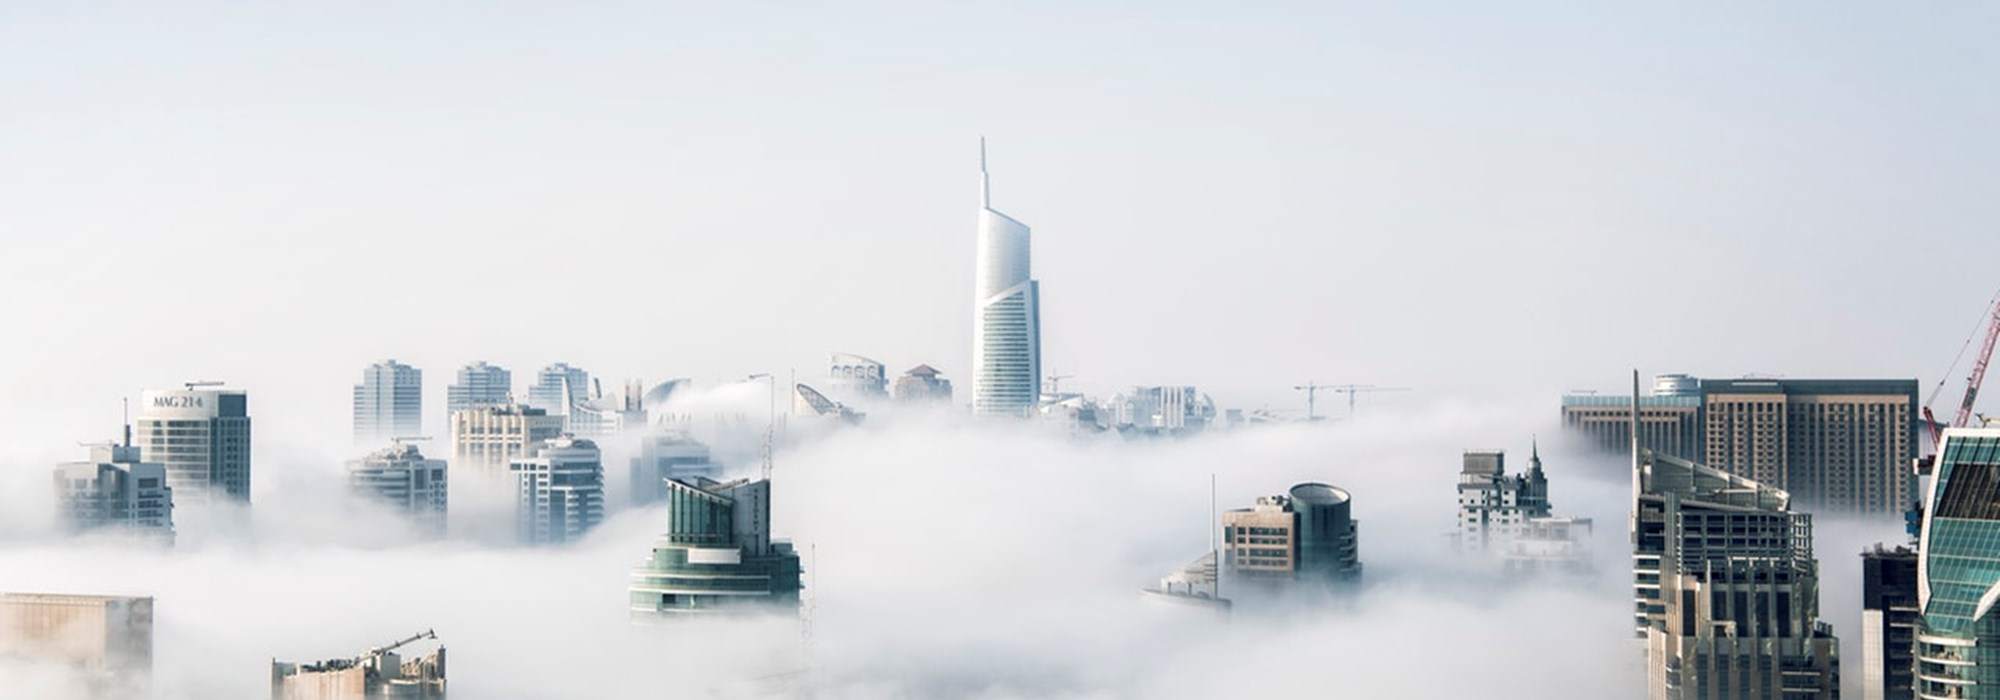 cloud covering a city